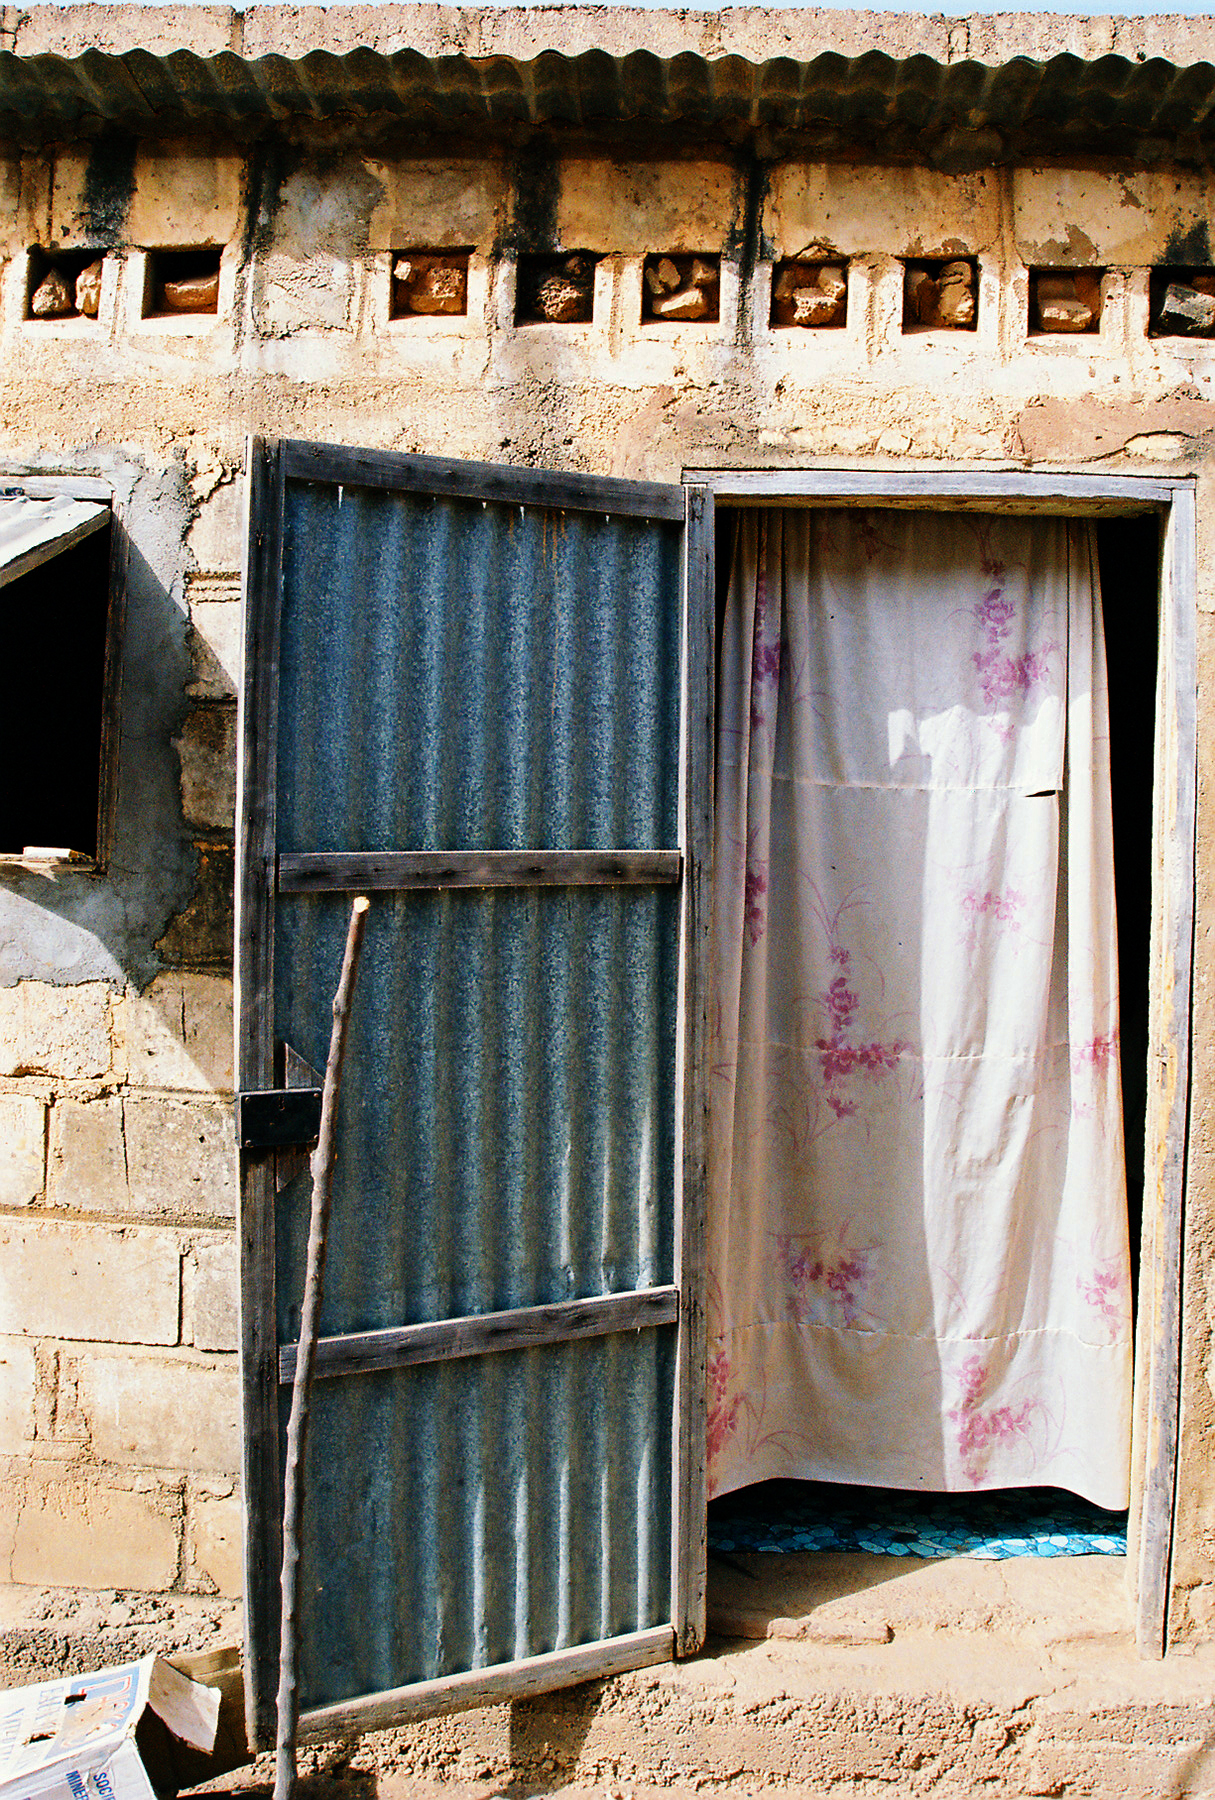 The doorway of someone's home in Mali.